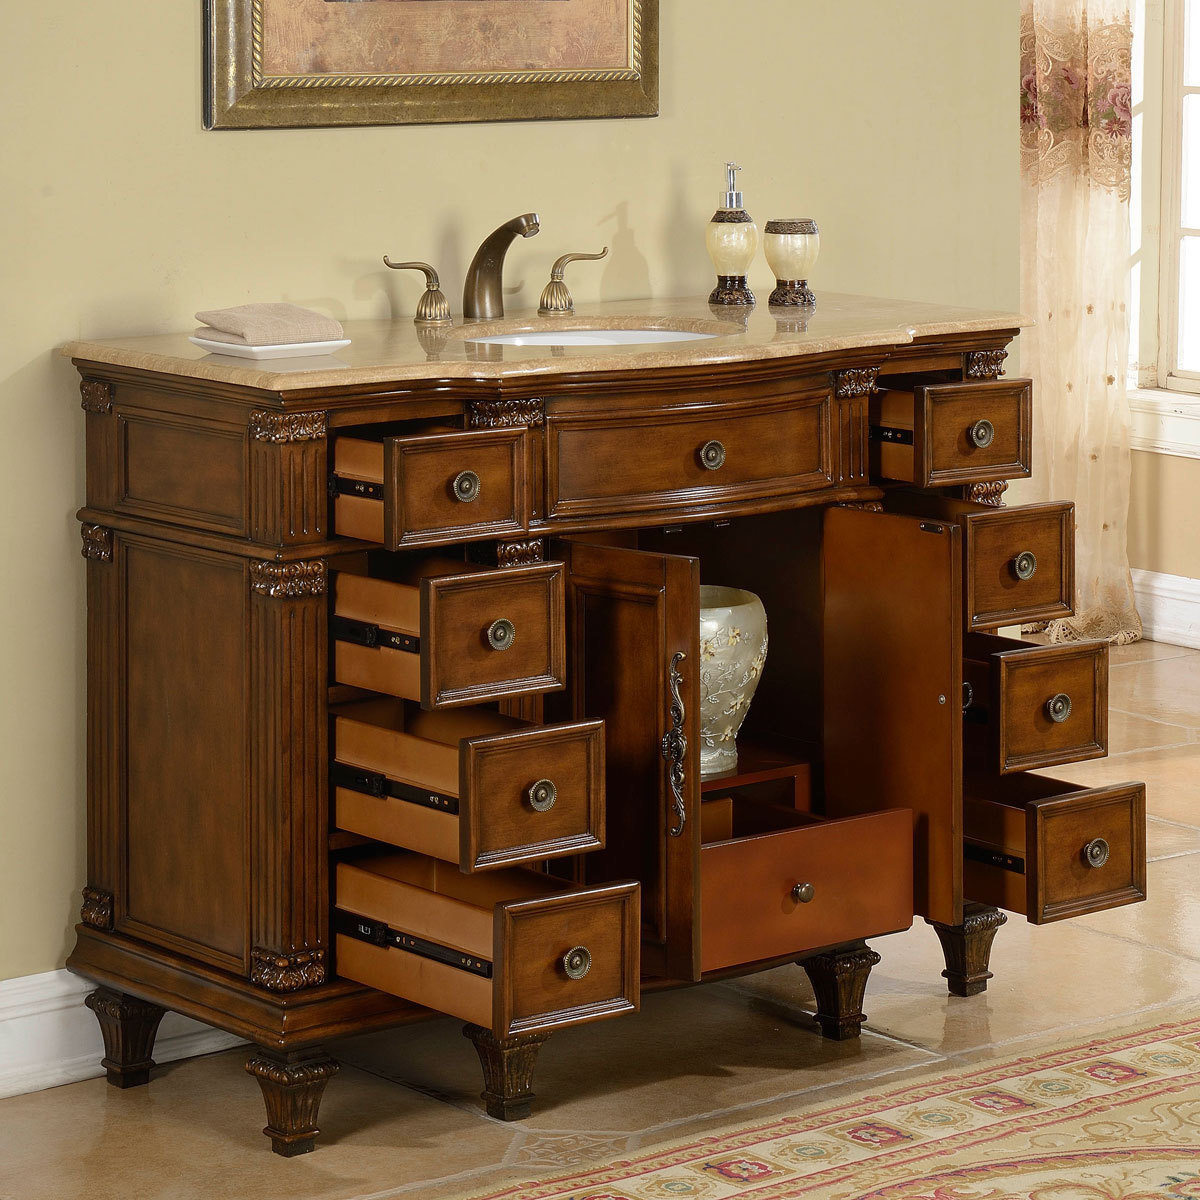 Accord 48 Inch Antique Single White Sink Bathroom Vanity